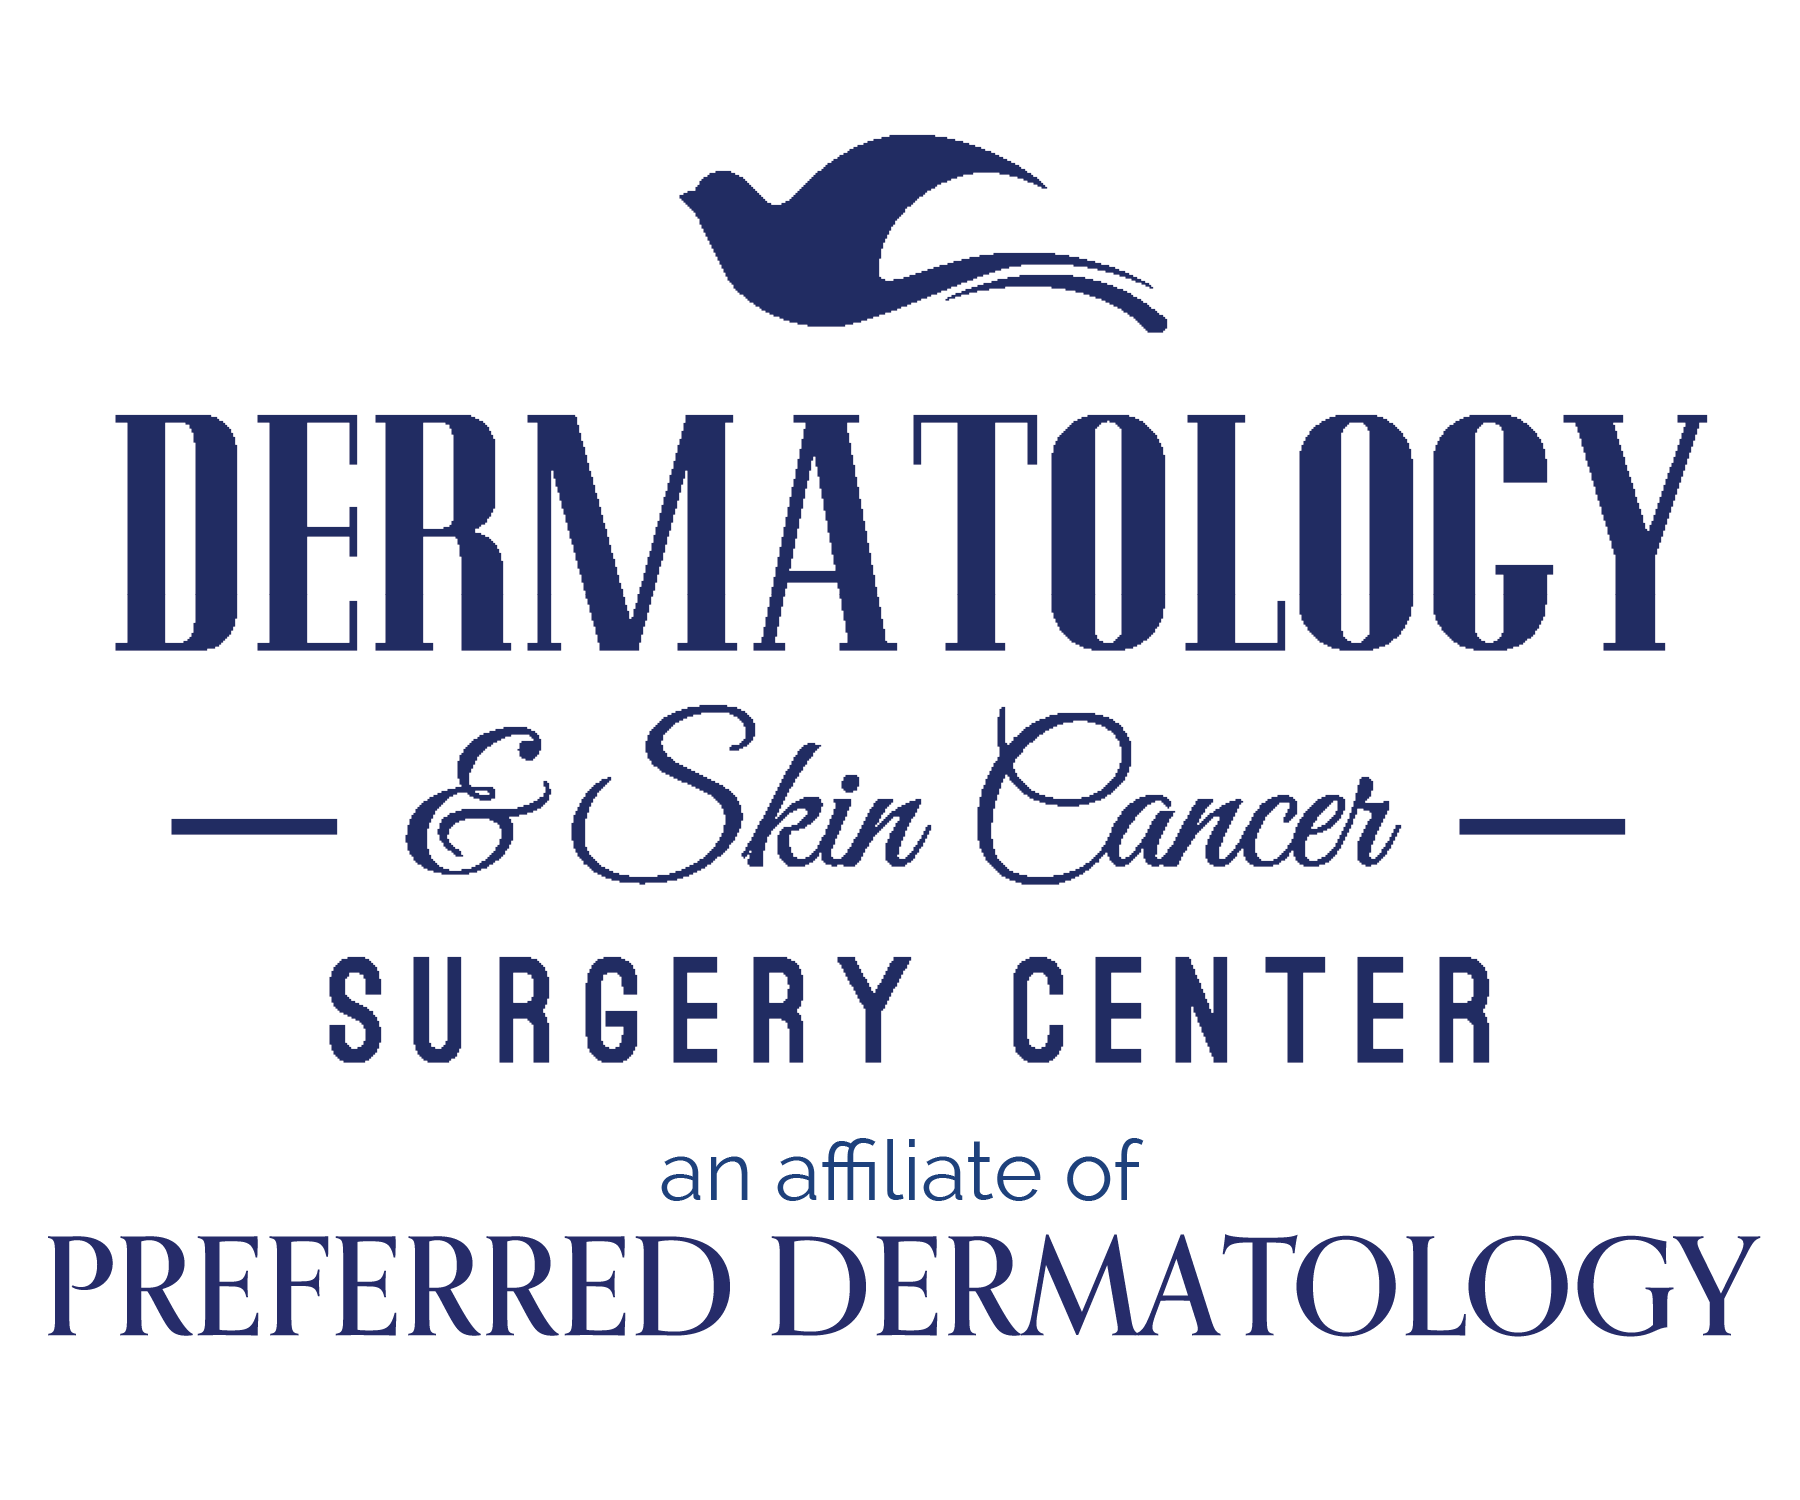 Dermatology and Skin Cancer Surgery Center - Goonville Sponsor